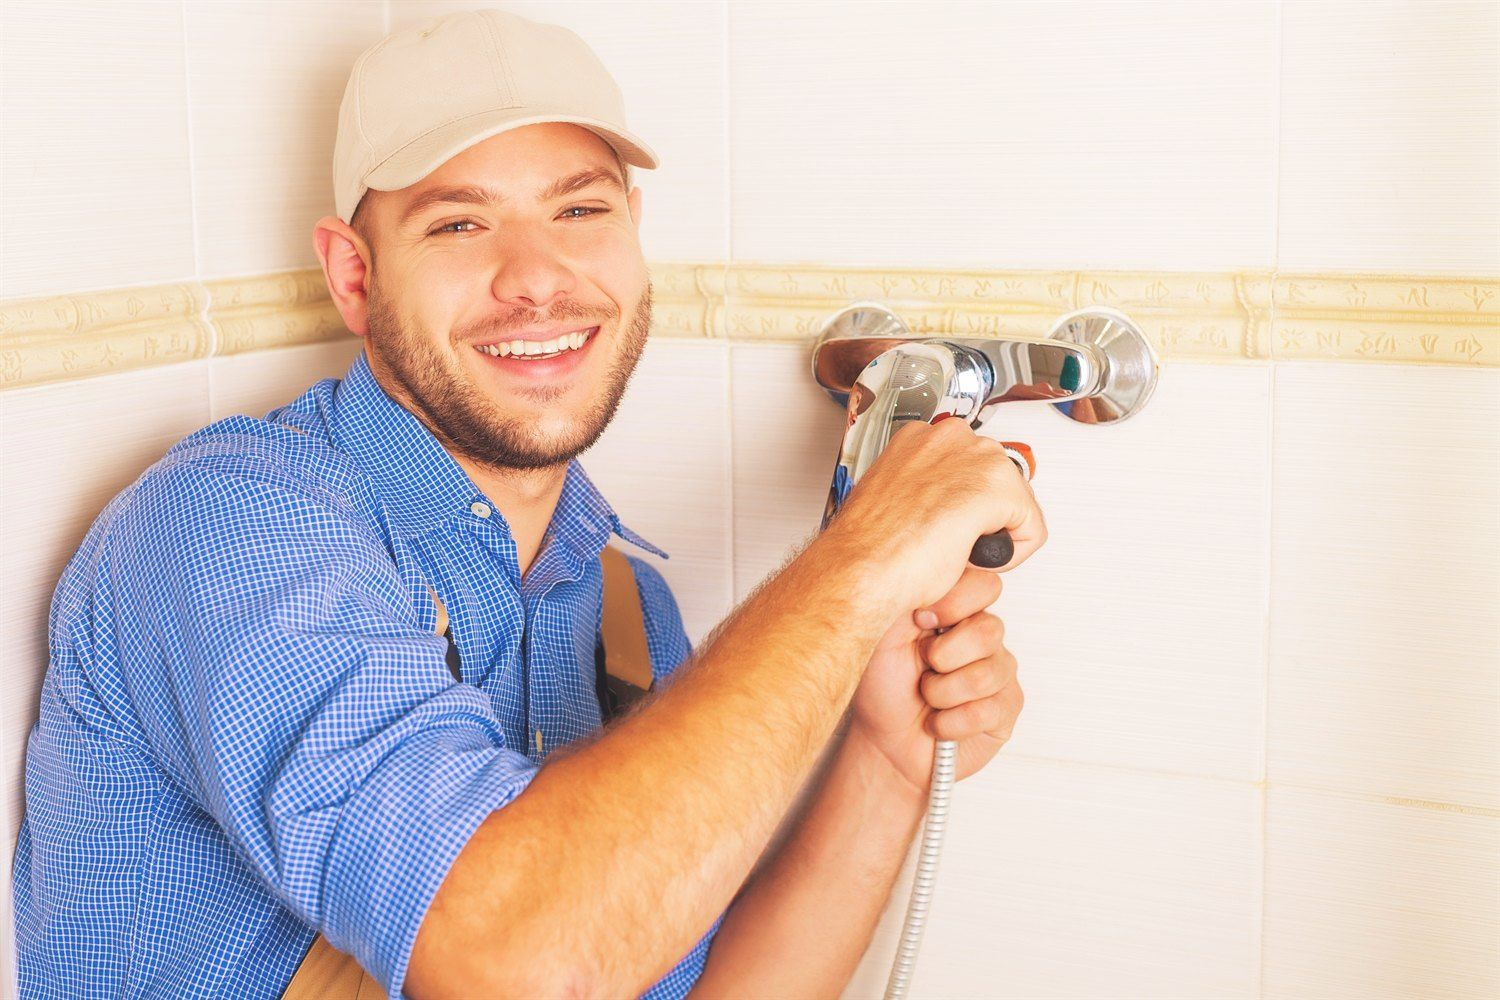 Are You In Need Of Expert Plumber In Marysville Quality Plumbers Marysville Professionals At One Call Services Can Handle All Of Your Drain Plumbing And Wate